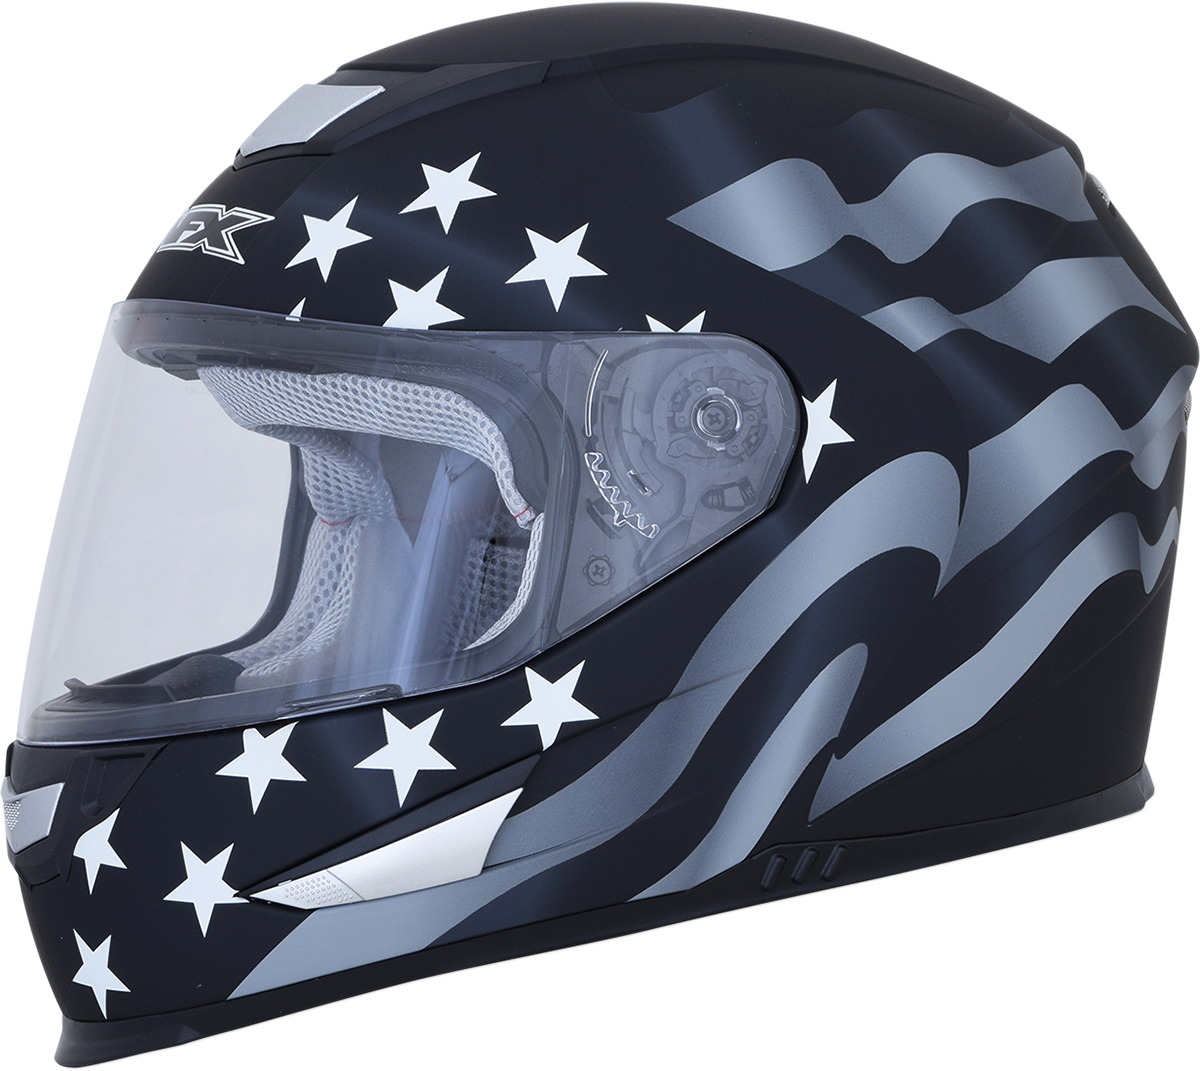 AFX FX-99 Graphic Full Face Motorcycle Street Helmet Adult All Sizes and Colors